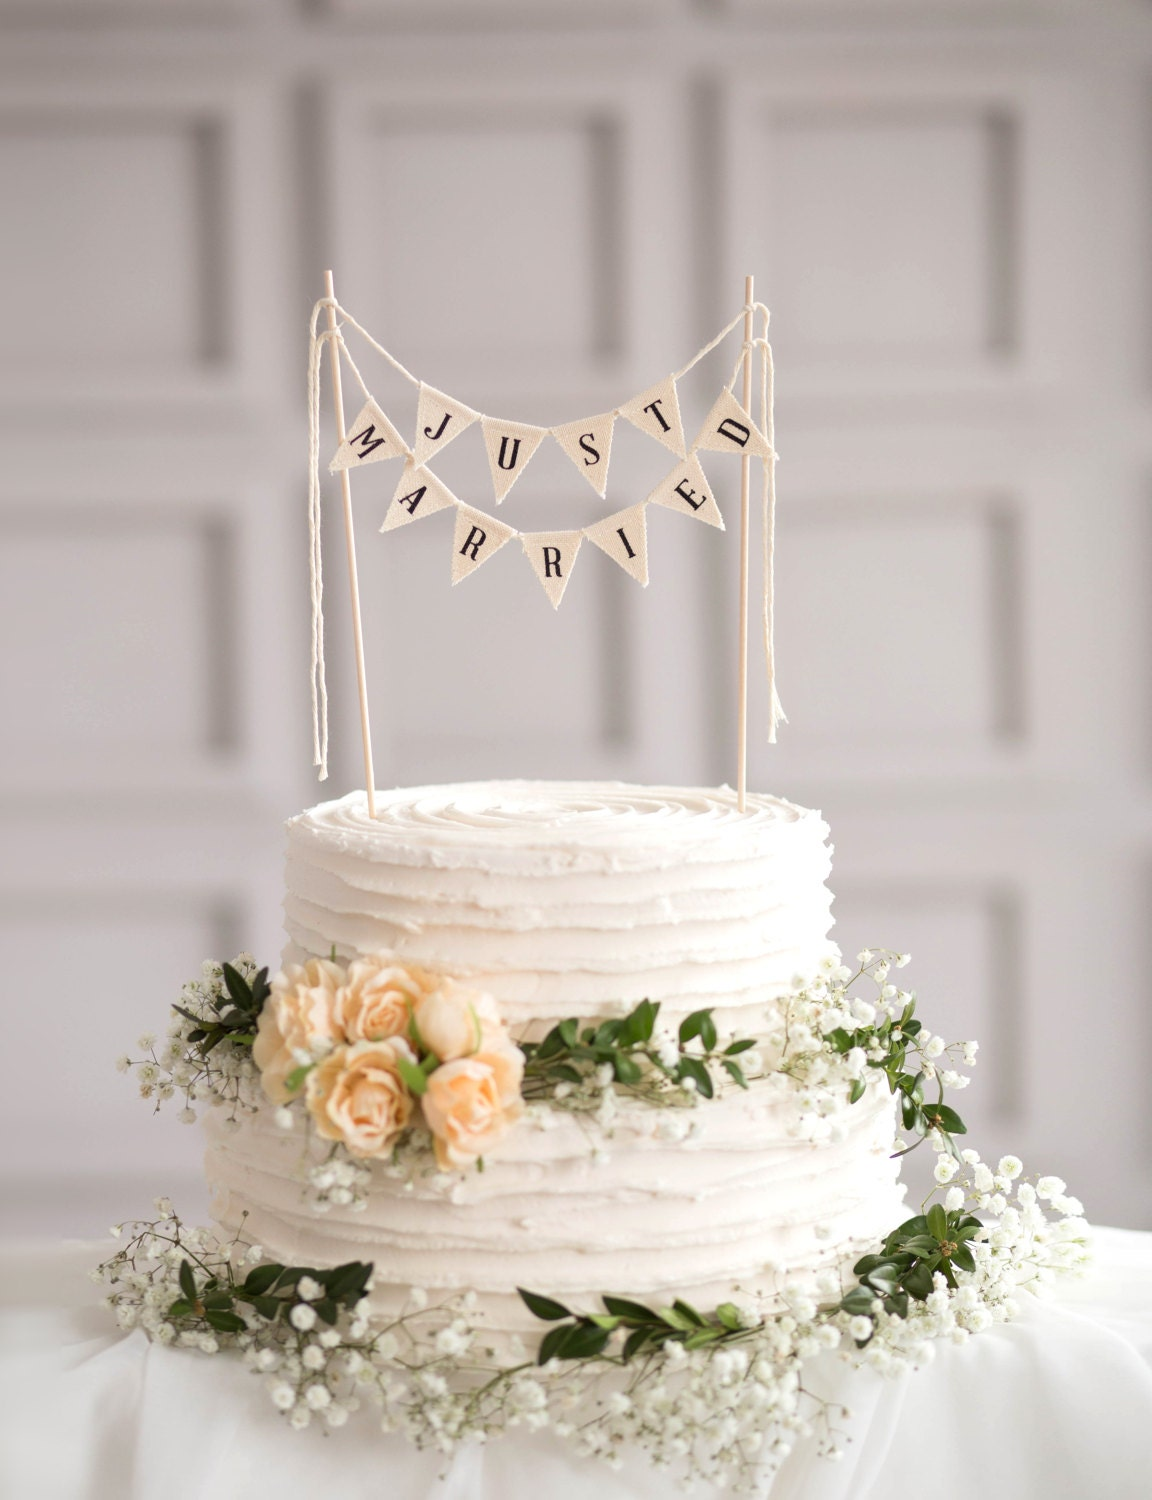 etsy wedding cakes just married wedding cake topper banner rustic wedding cake 14048